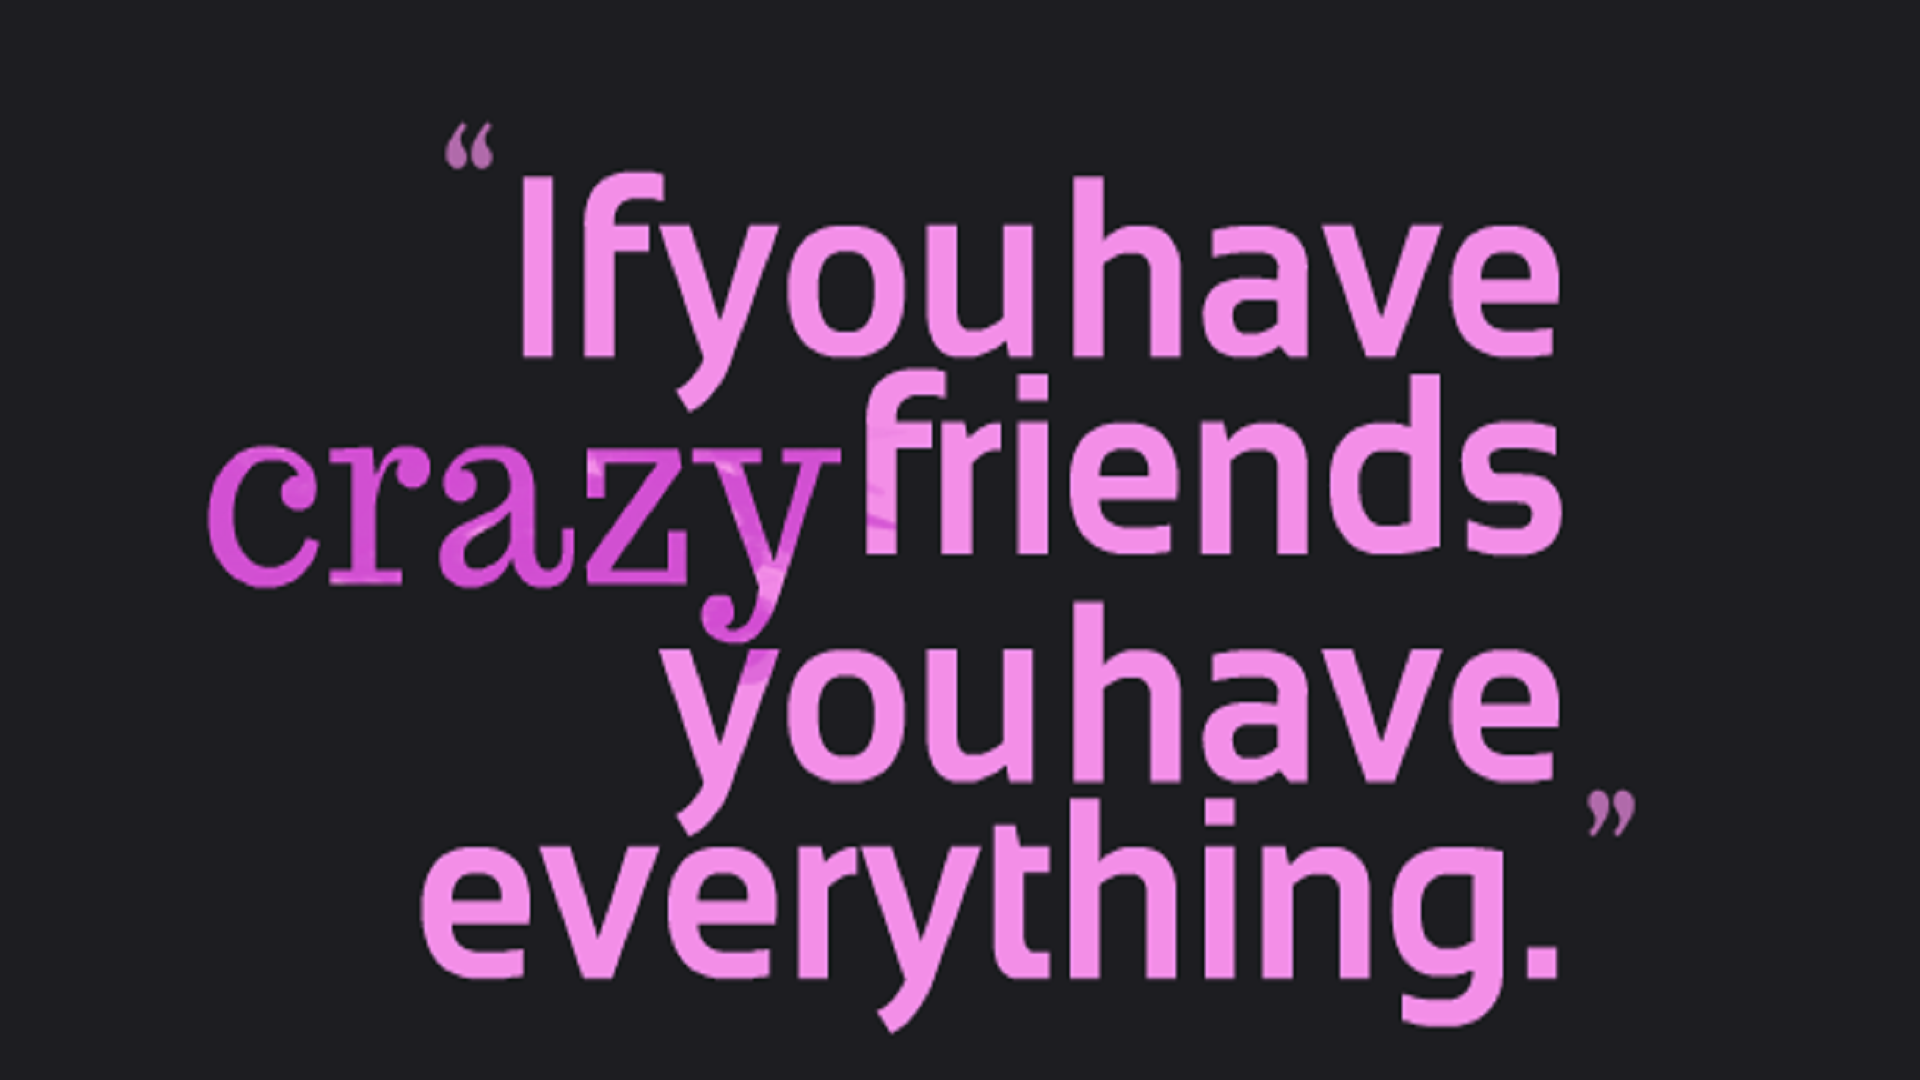 Funny-Quotes-For-Friends-Pictures-free-hd-wallpapers - Friendship PNG HD